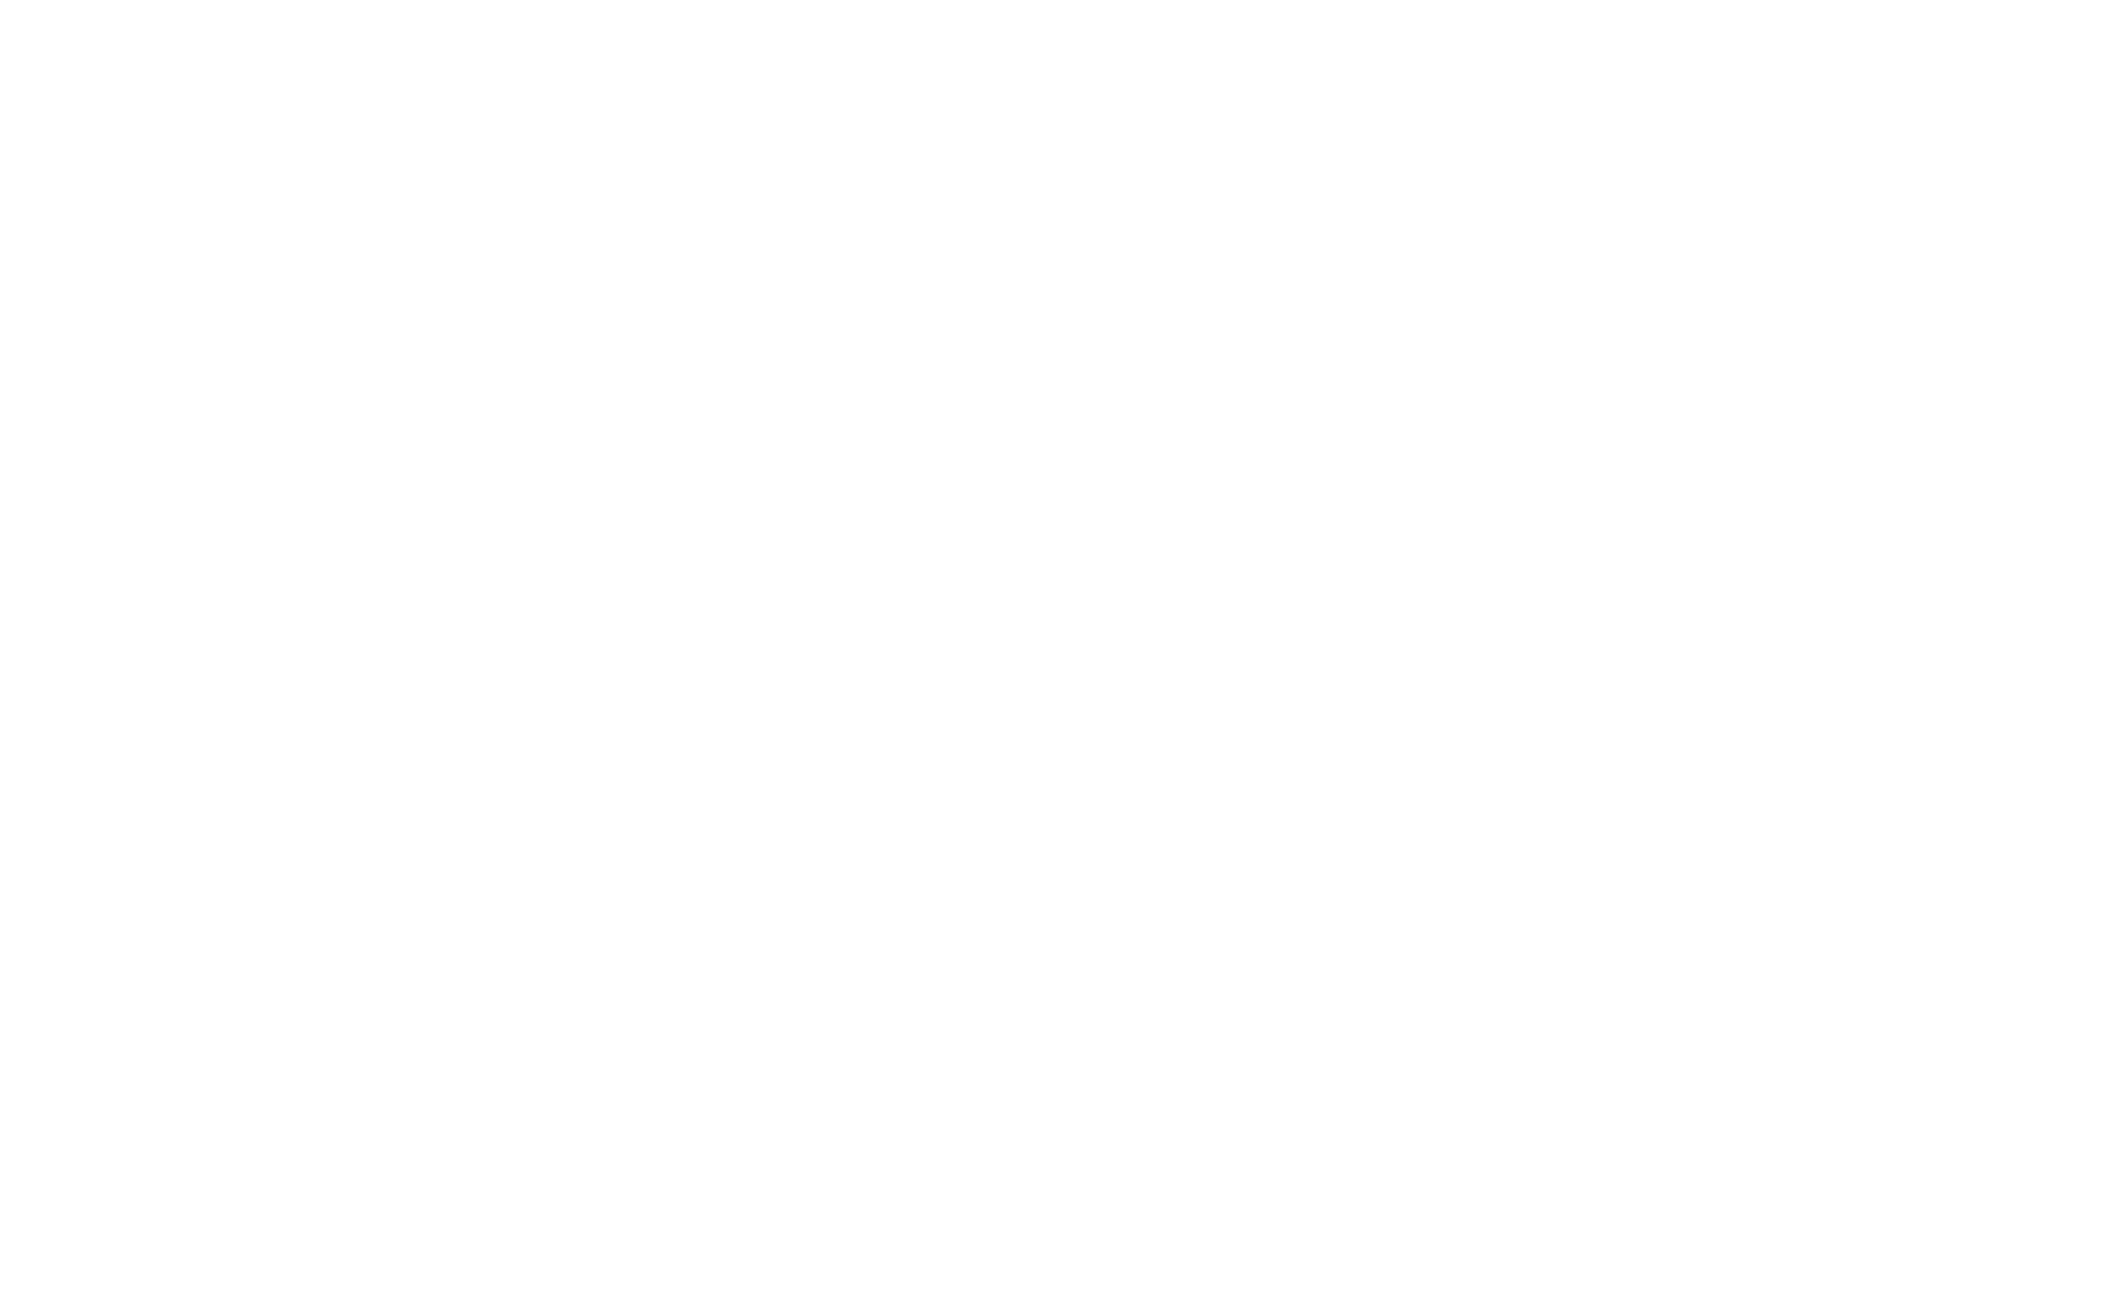 webinars ddos next level